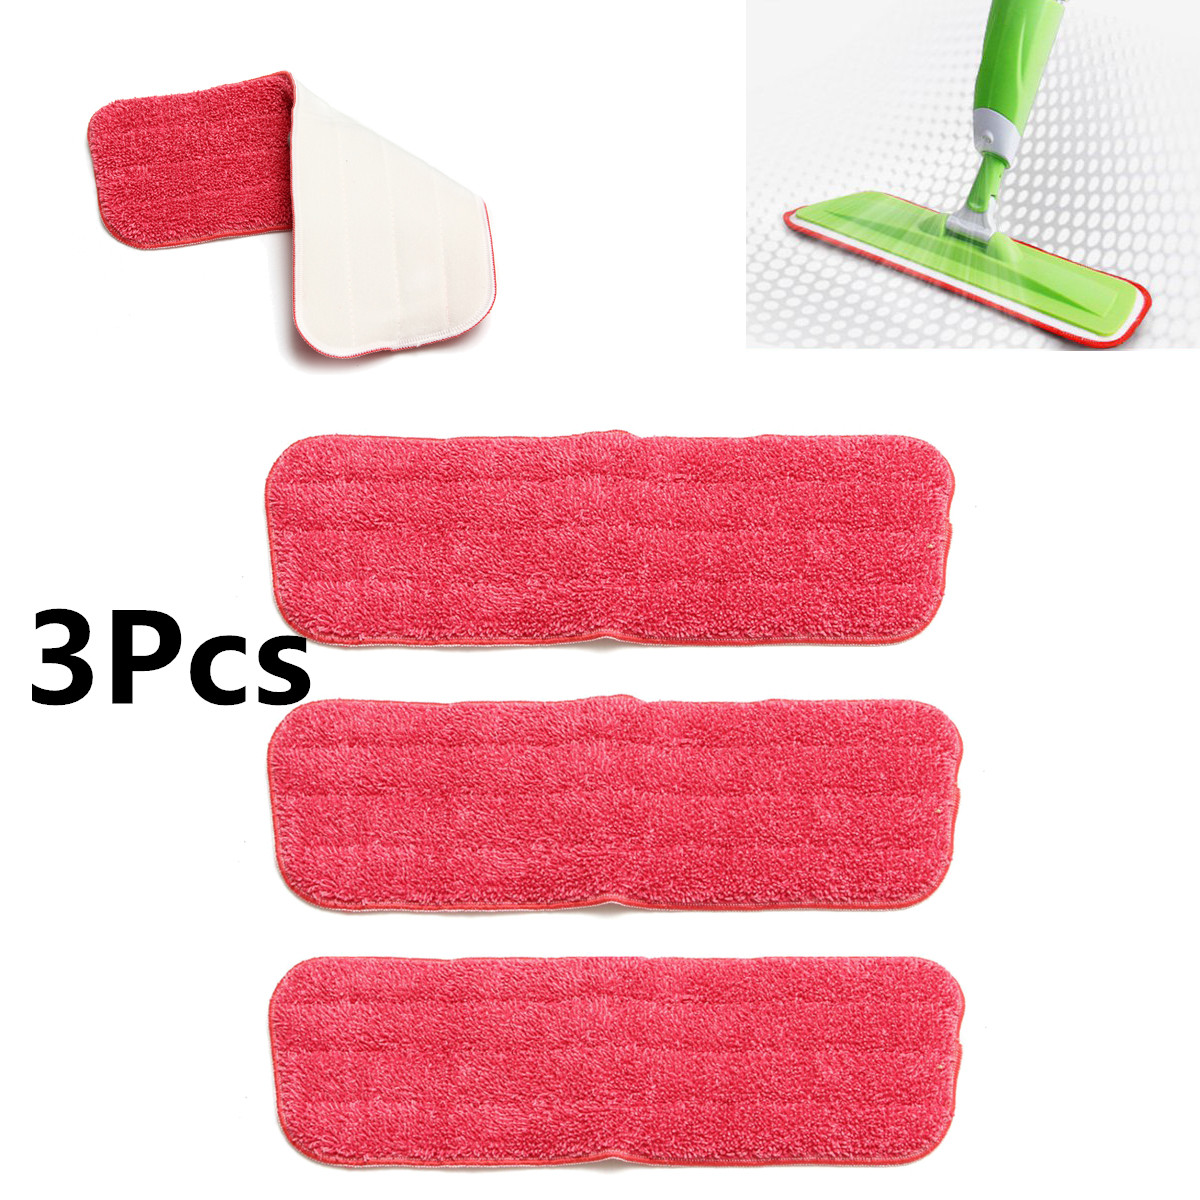 3pcs Microfiber Wet Mop Scrubbing Pads Washable Spray Mop Pad Replacement Mop Head Household Dust Cleaning